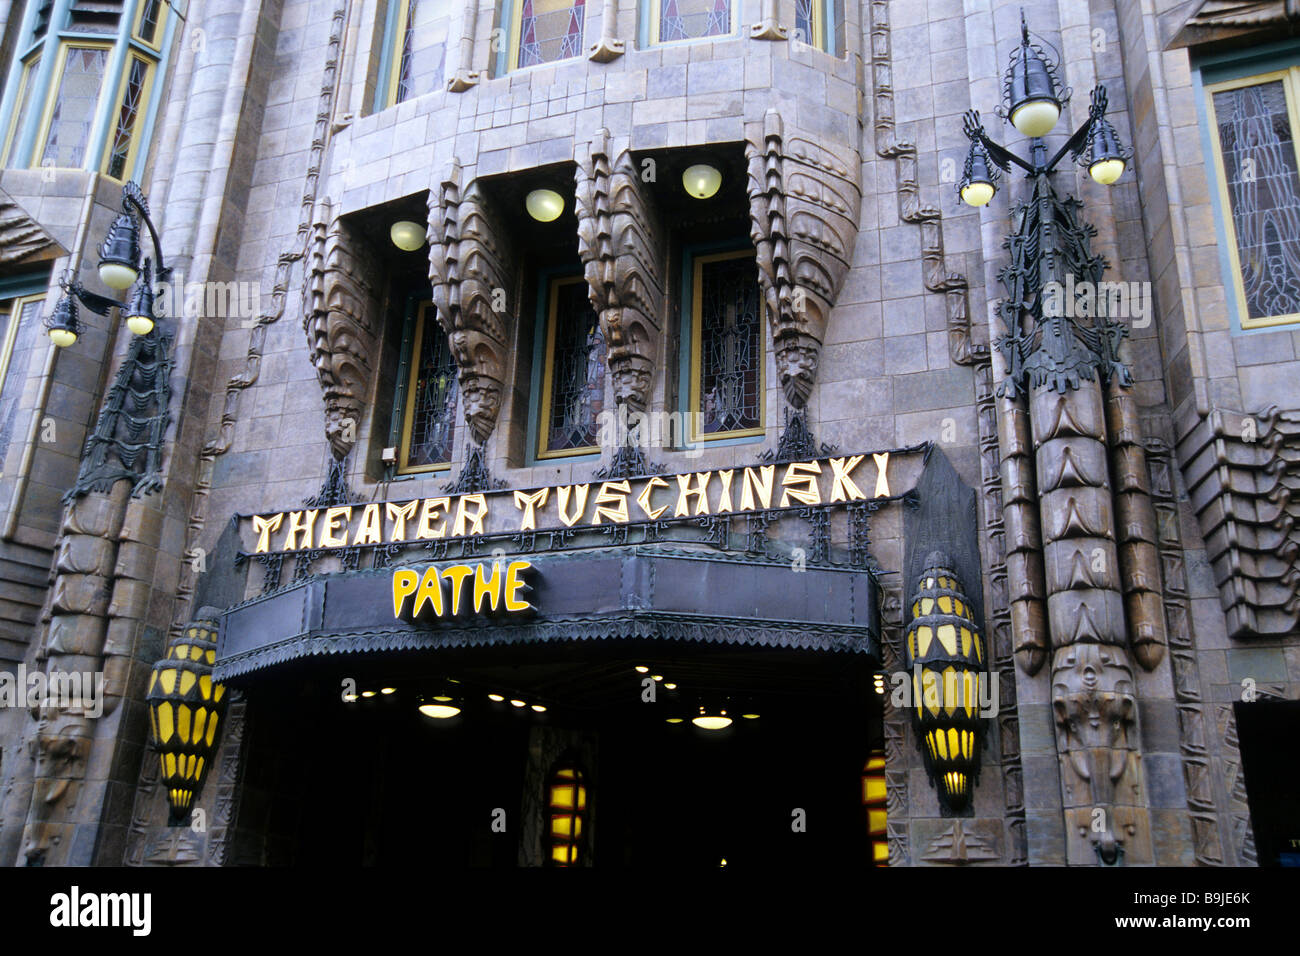 Tuschinski Theatre, Pathe Cinemas, cinema, detail of the facade with lit-up entrance in the Reguliersbreestraat, - Stock Image